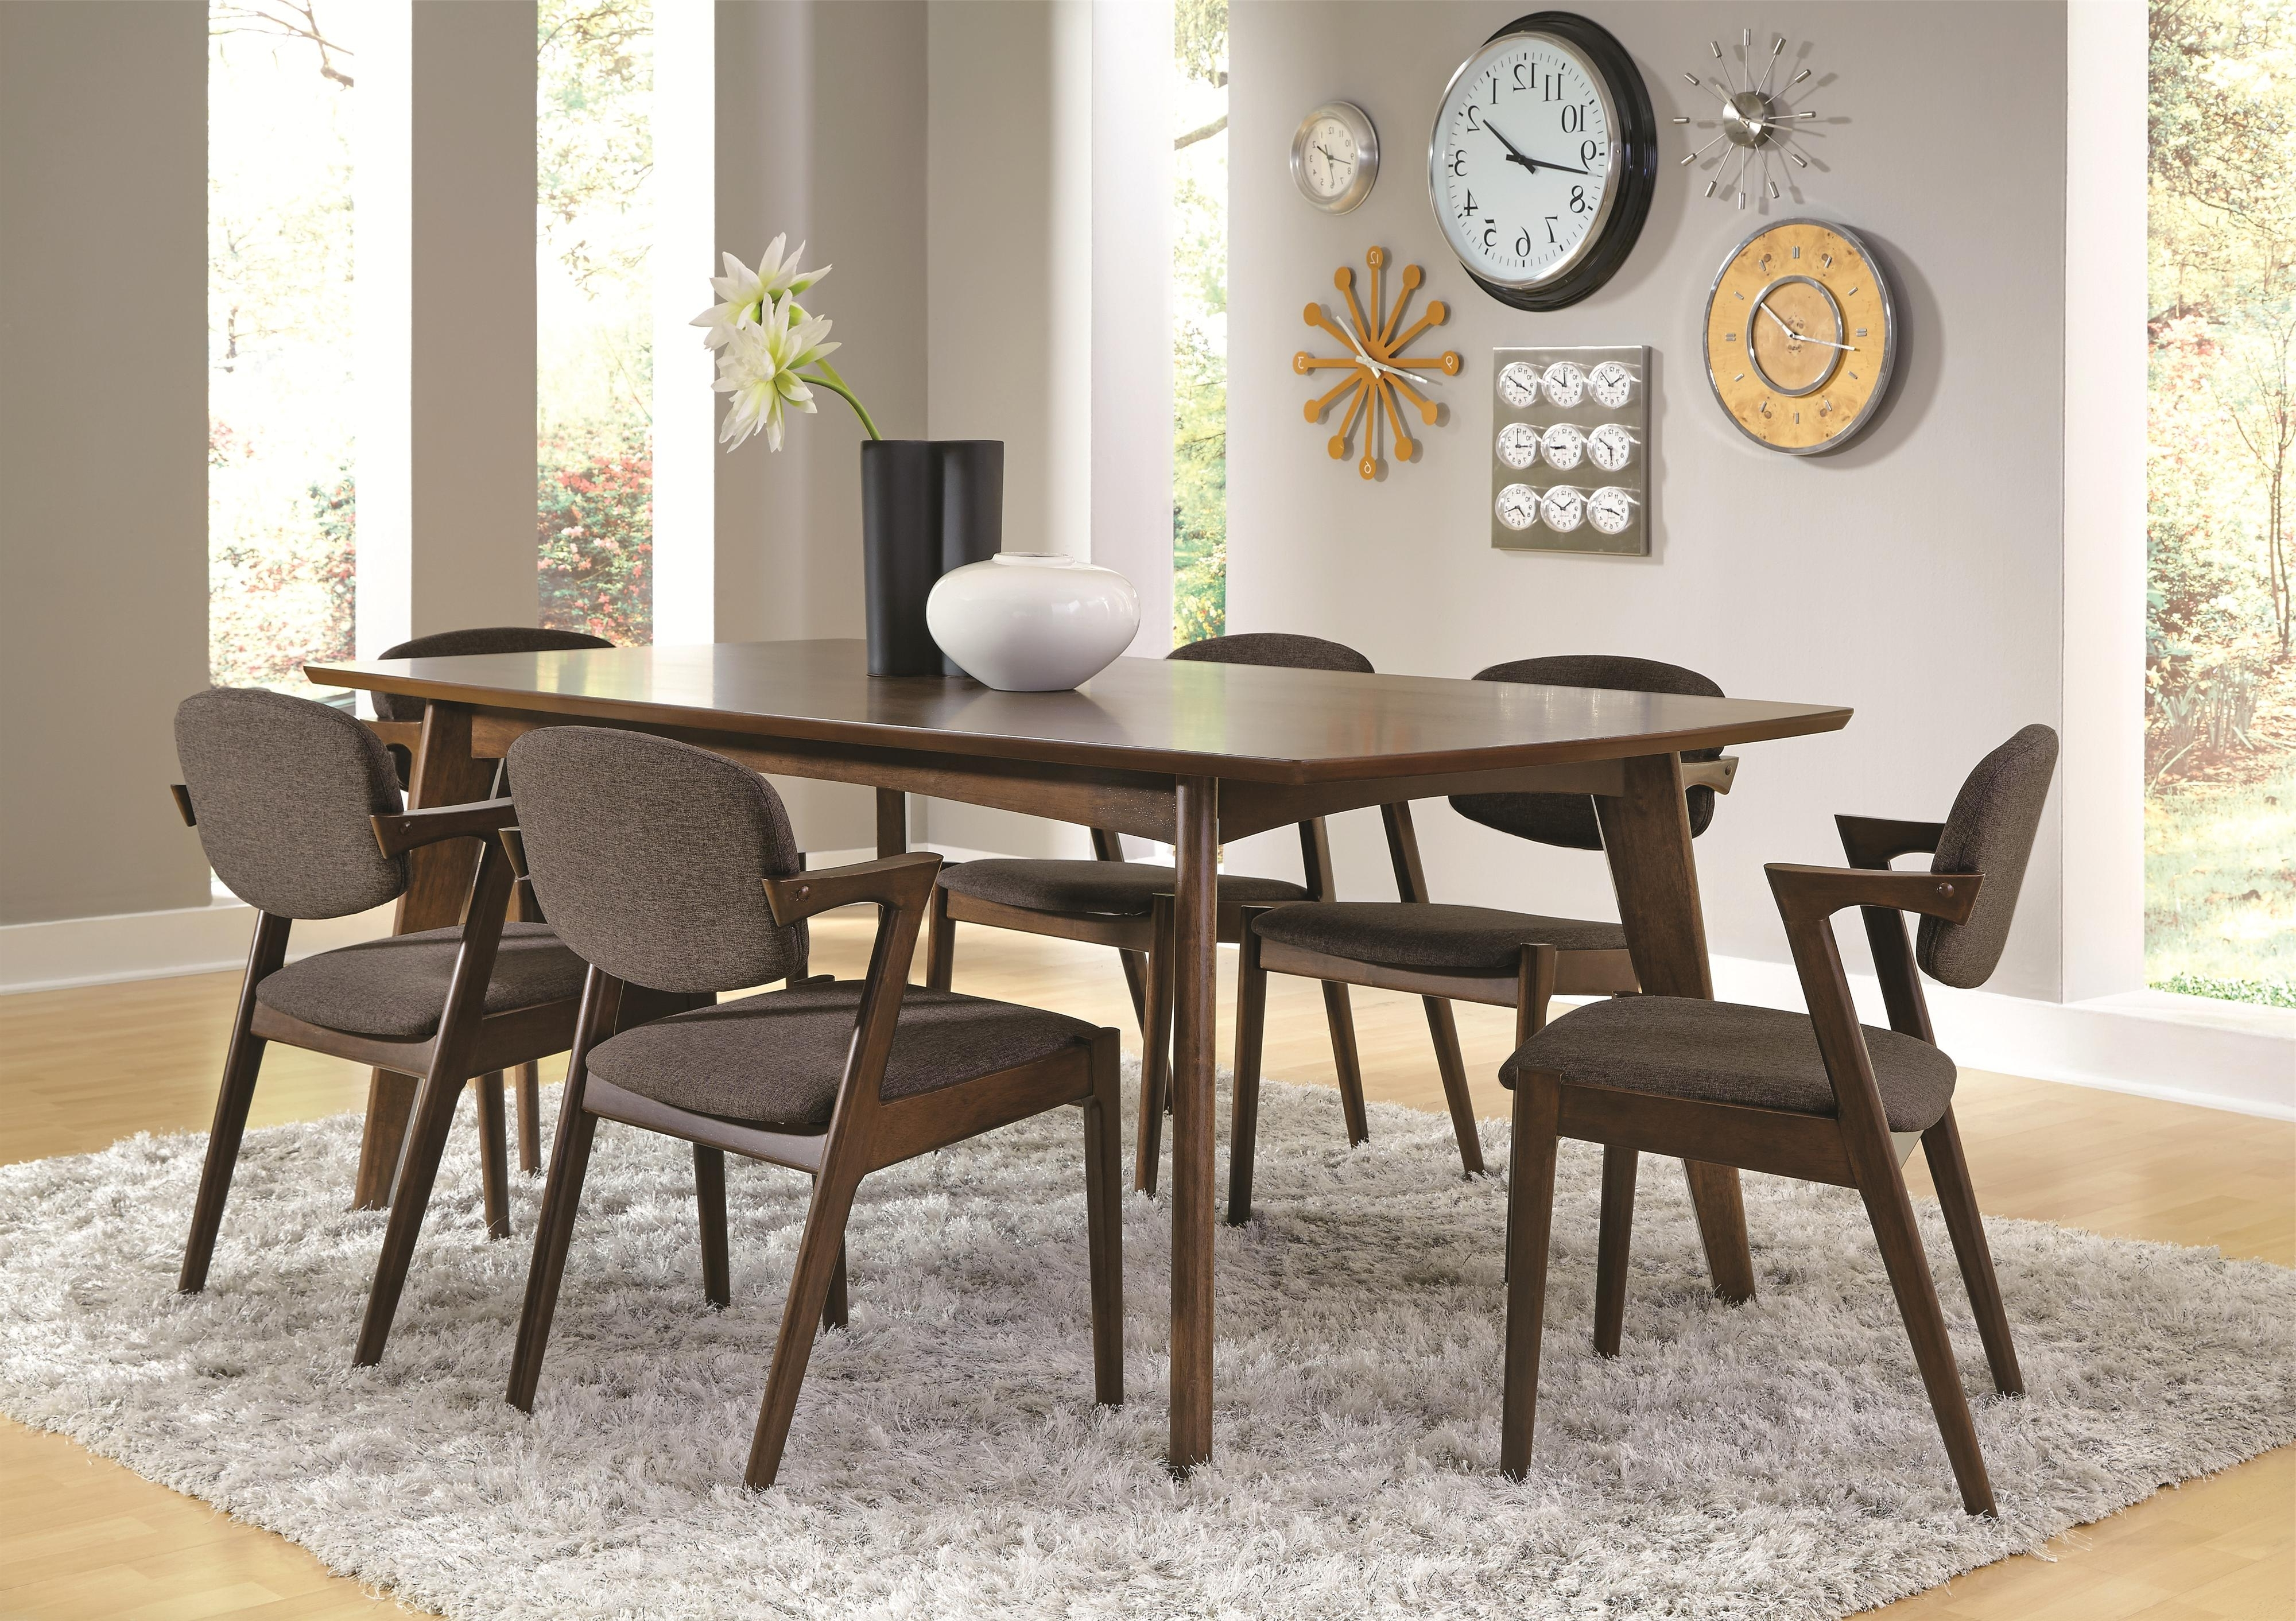 Value City throughout Modern Dining Table And Chairs